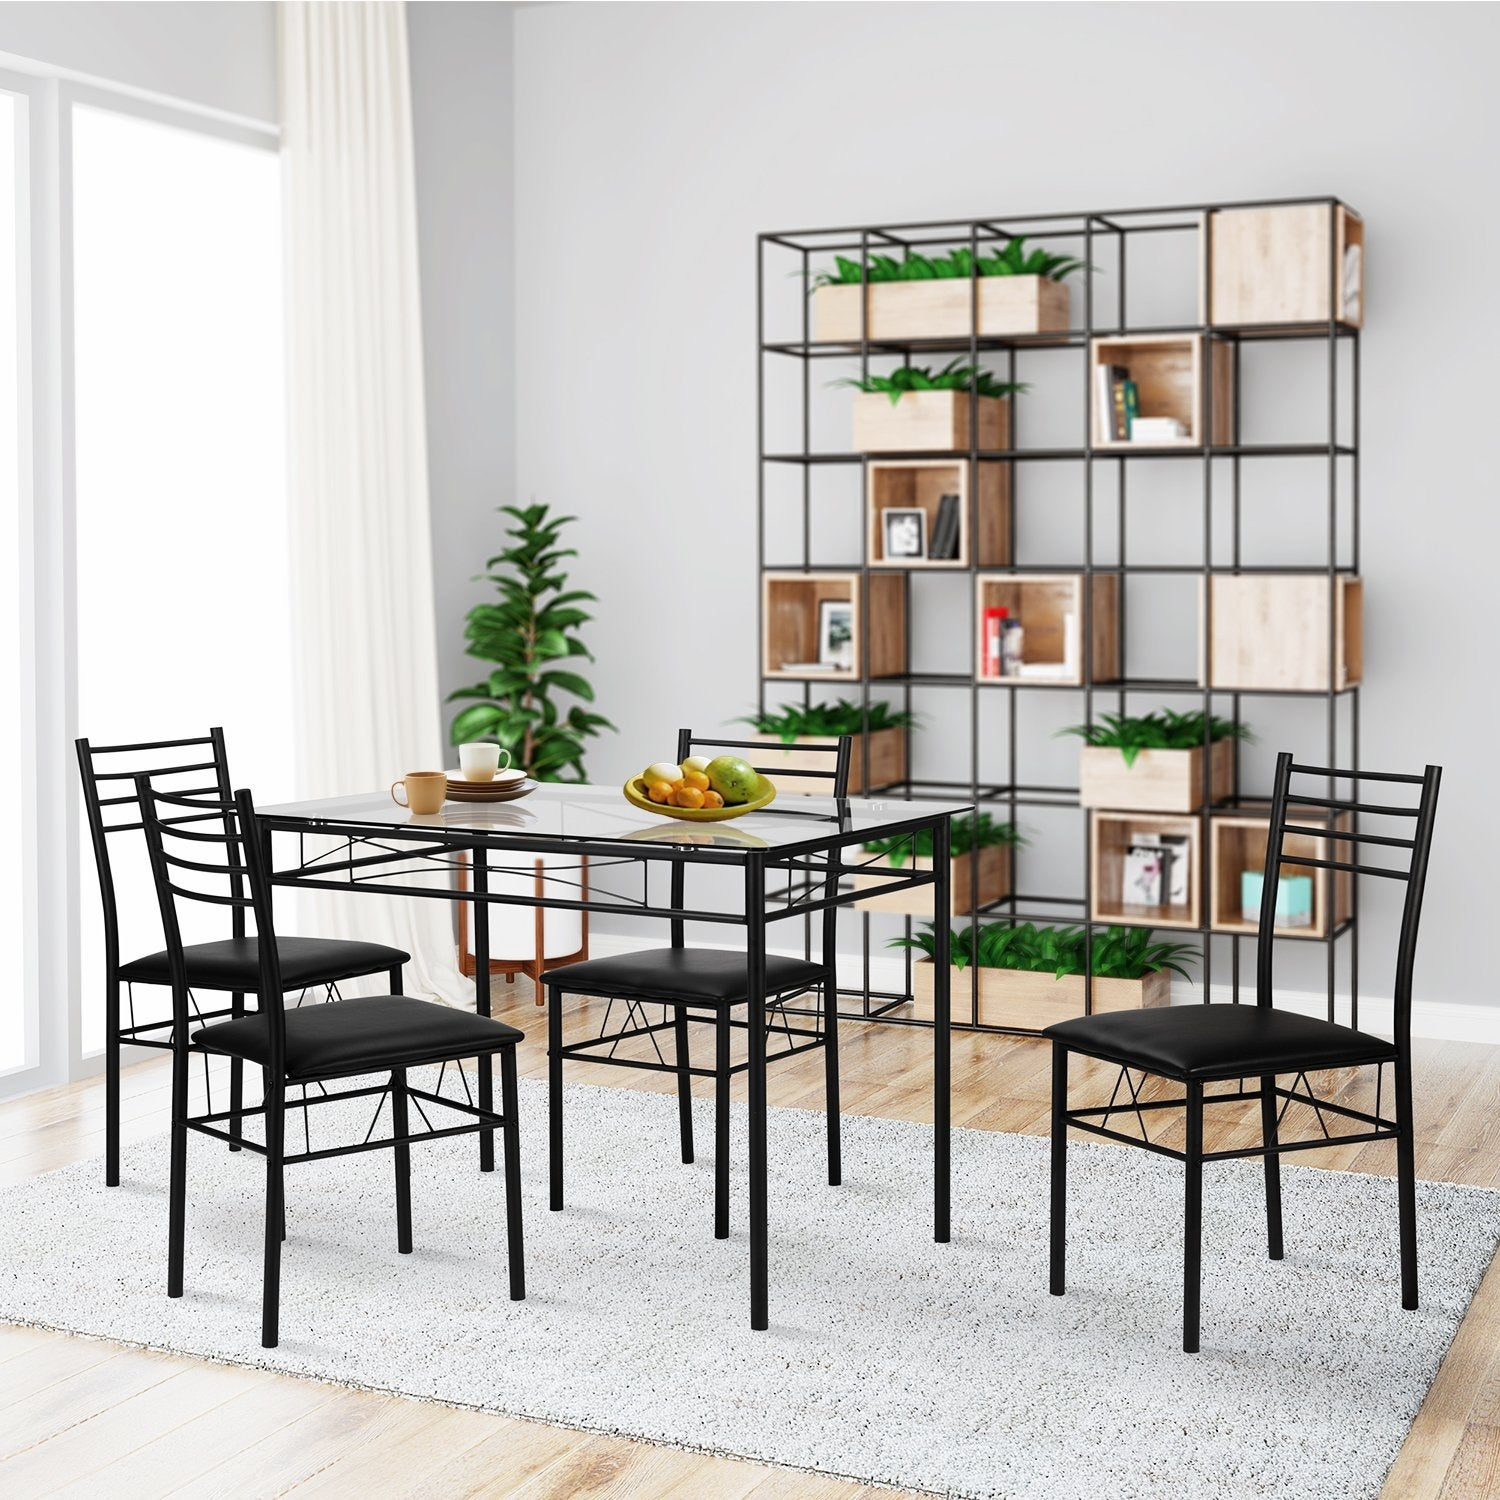 VECELO Dining Table Sets Glass With 4 Chairs Metal Kitchen Room Furniture 5 Pcs